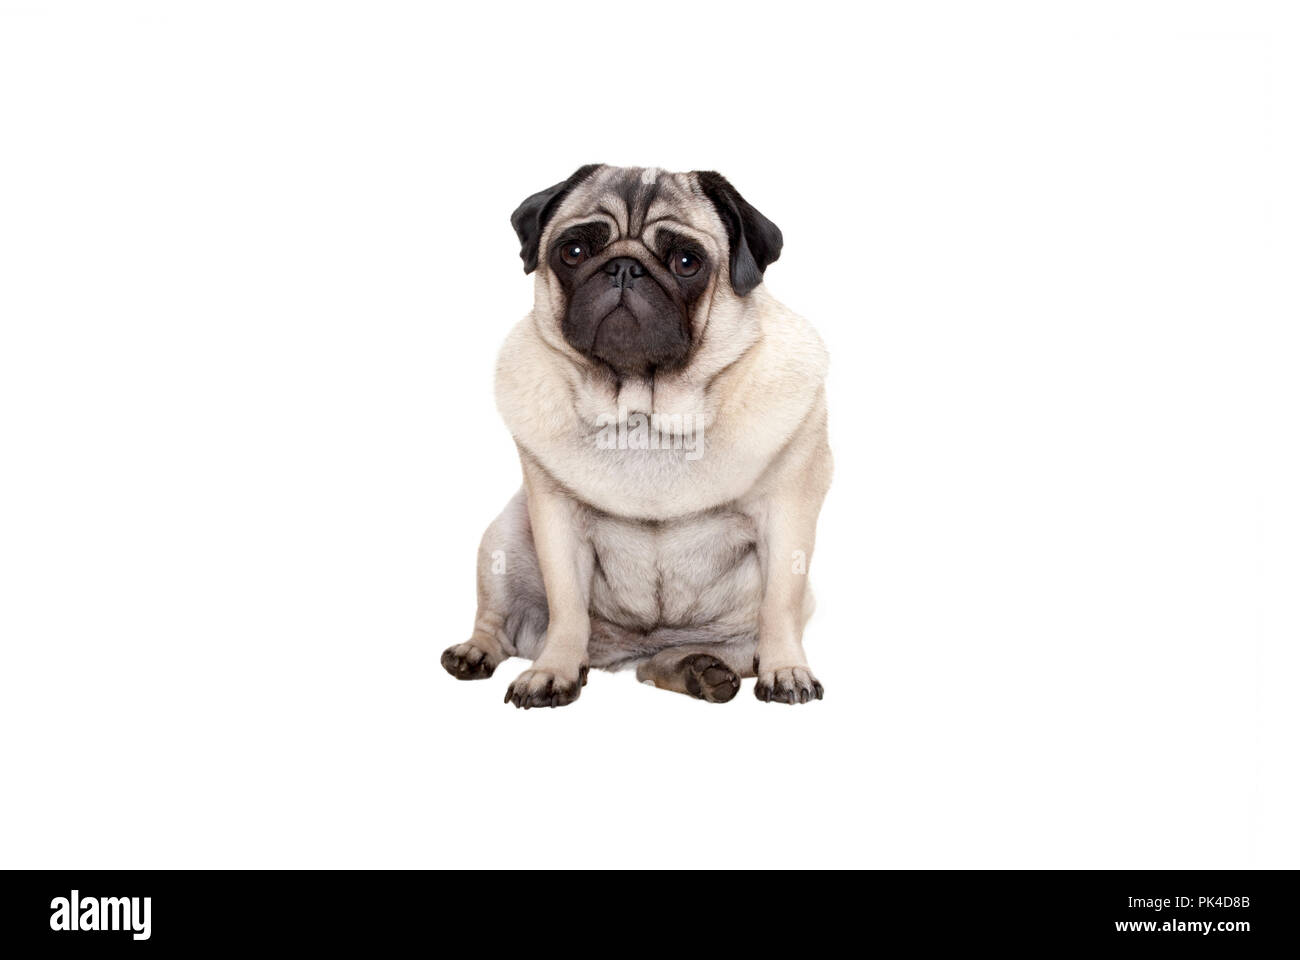 beautiful pug puppy dog sitting down with sweet face, isolated on white background - Stock Image